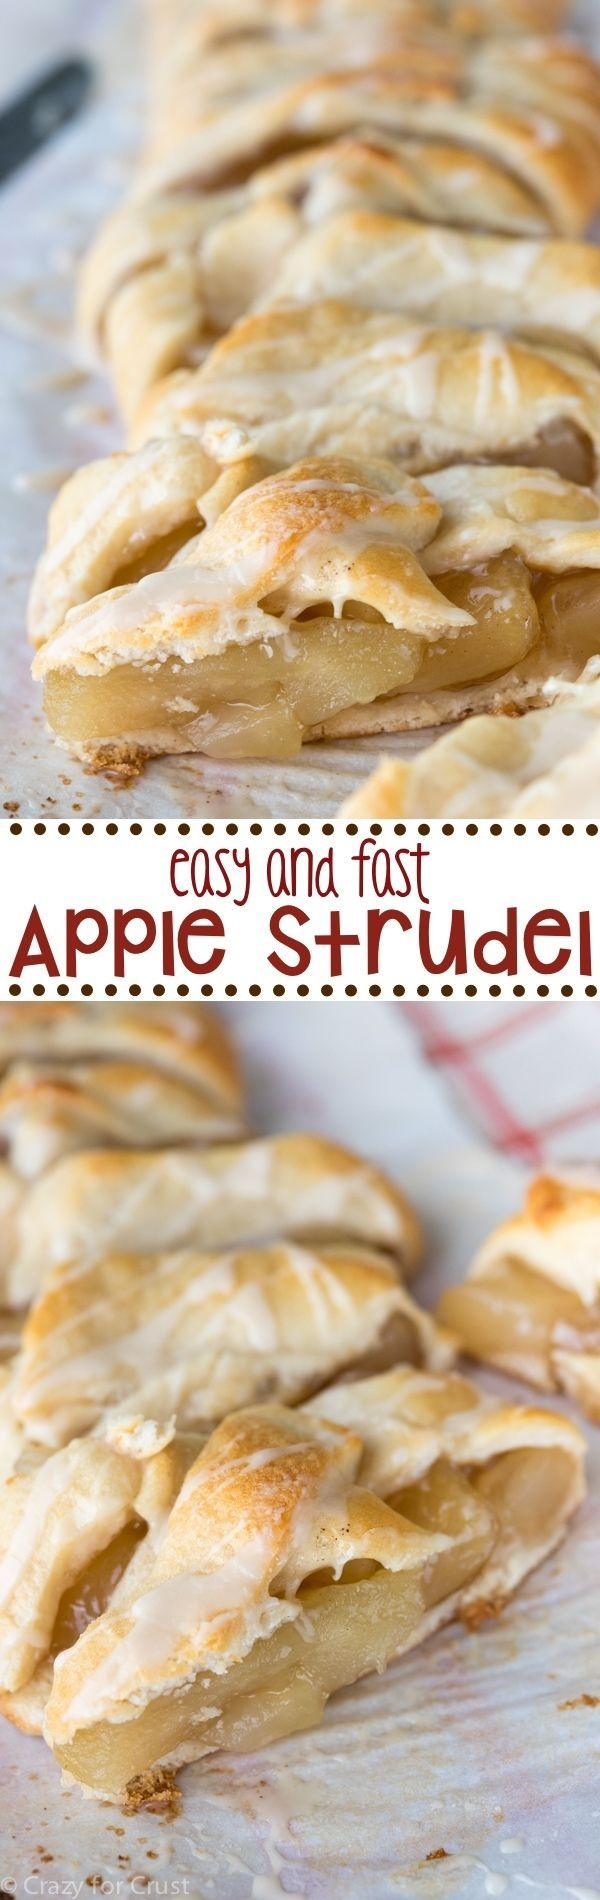 This easy and fast Apple Strudel recipe is so good! It makes the perfect breakfast or dessert! #dessert #recipes #sweet #treat #recipe